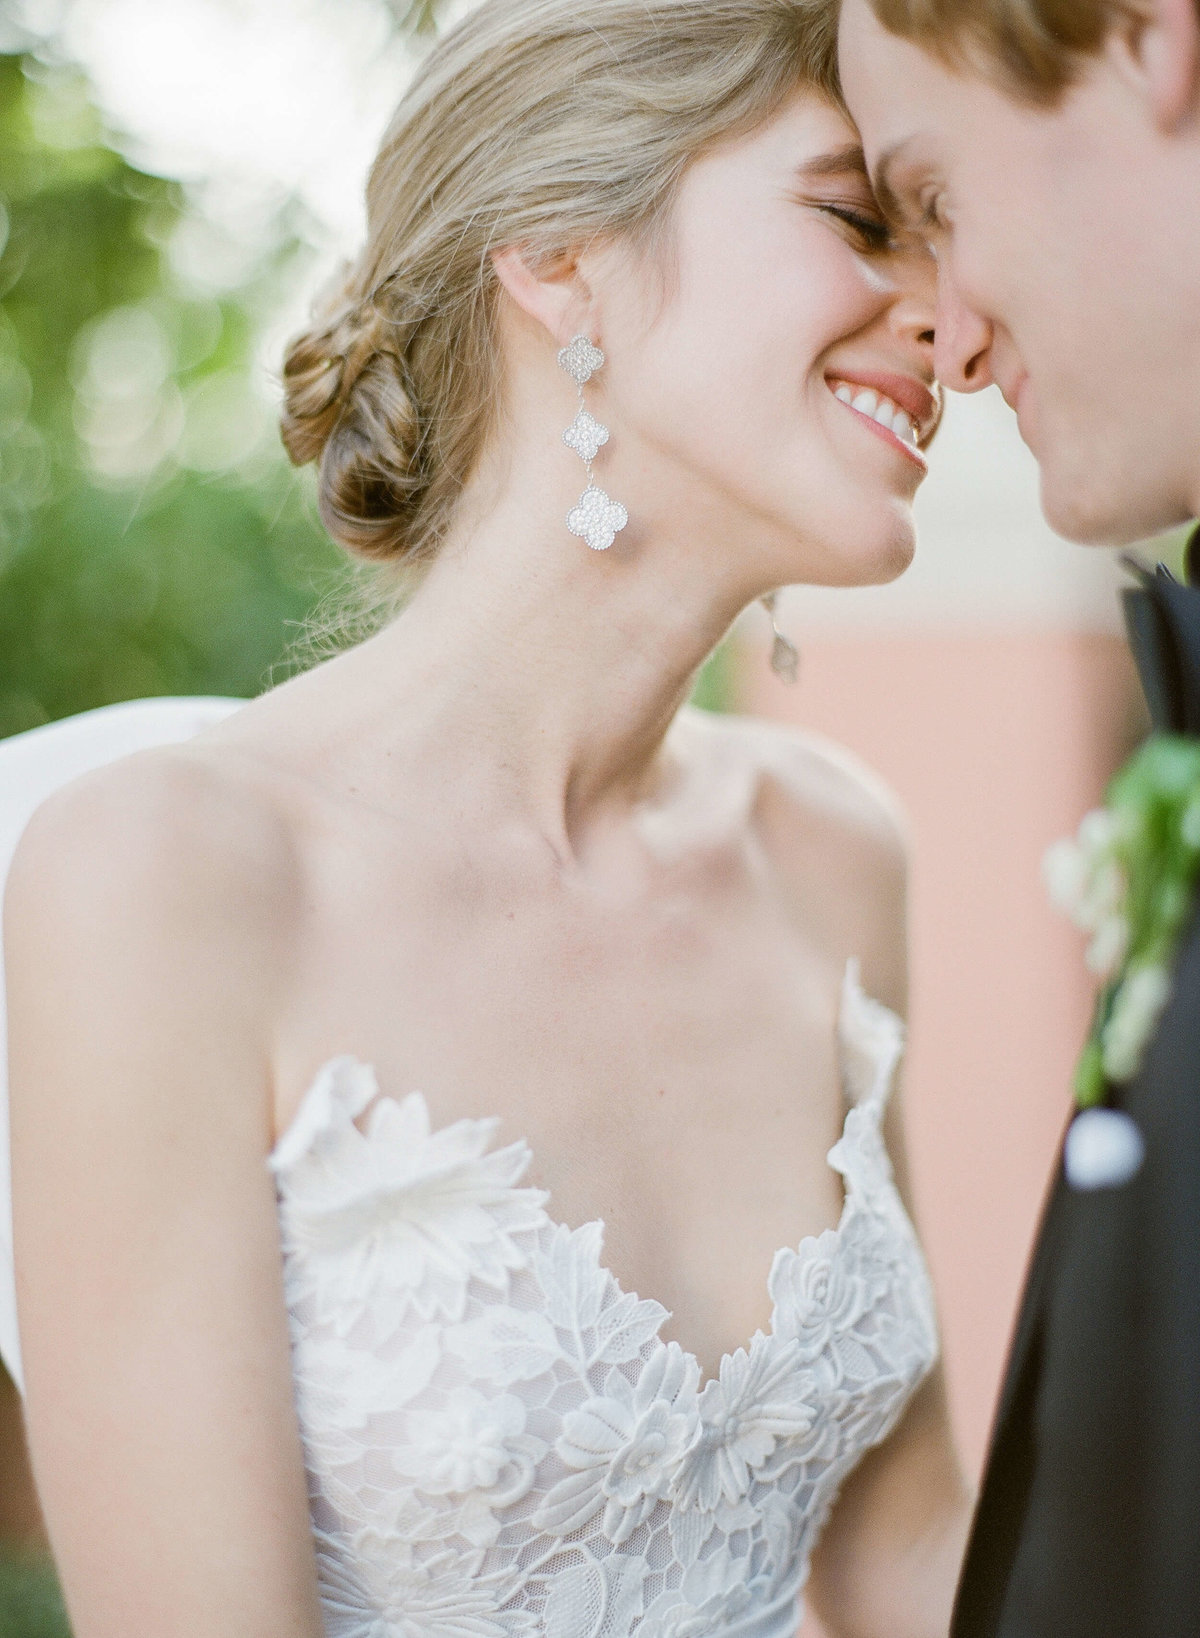 40-KTMerry-wedding-photography-Van-Cleef-Arpels-earrings